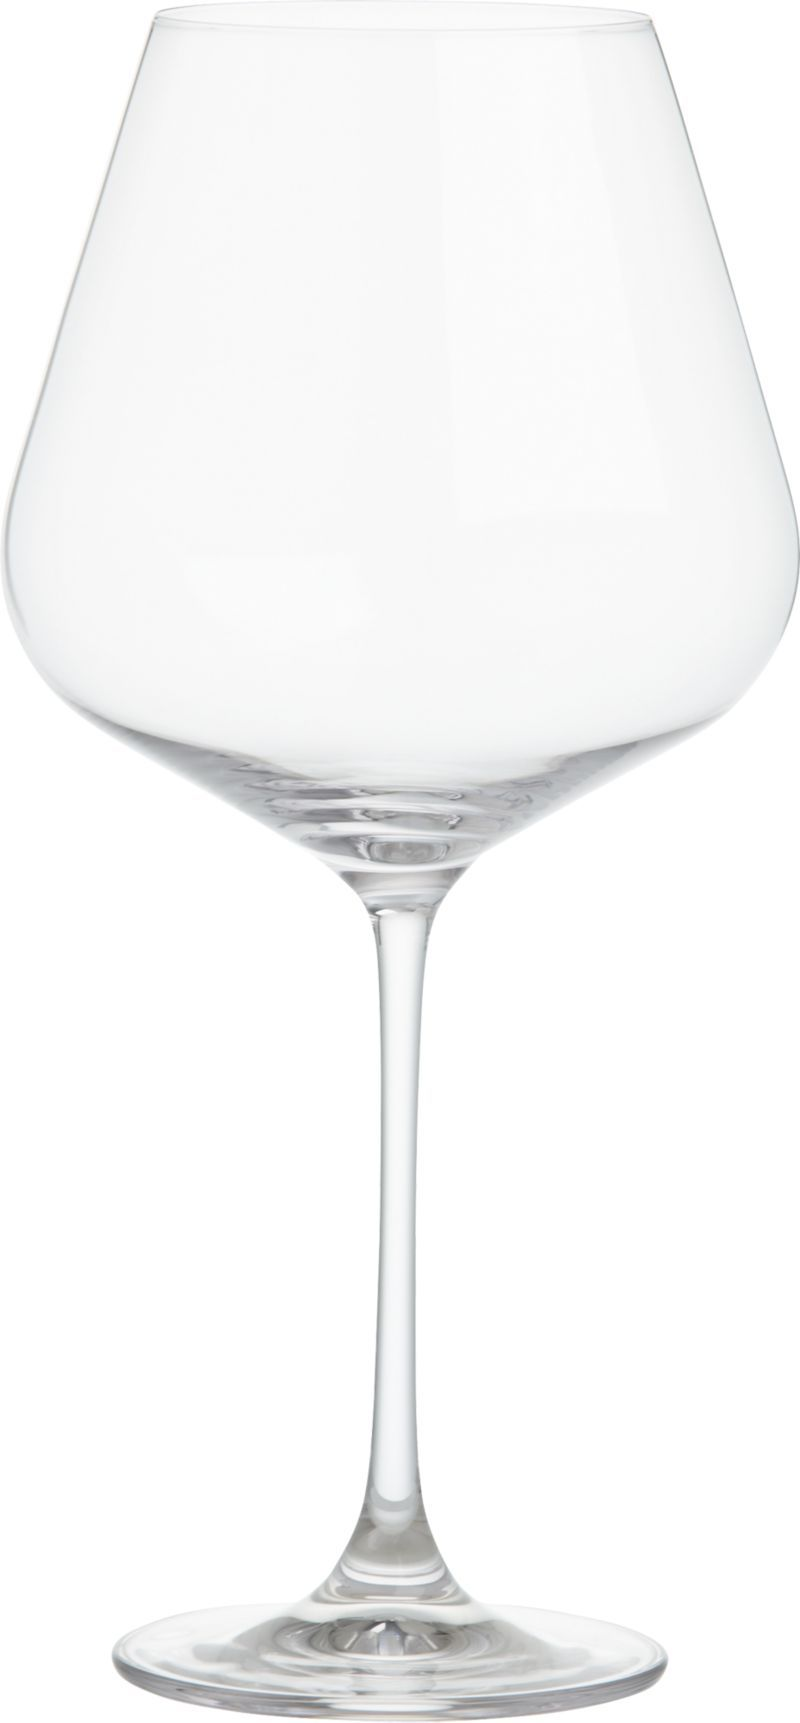 A Handful Of These Would Be Nice Oversized Wine Gl Has Refined Modern Profile With Flared Bowl Slender Stem And Fine Rim